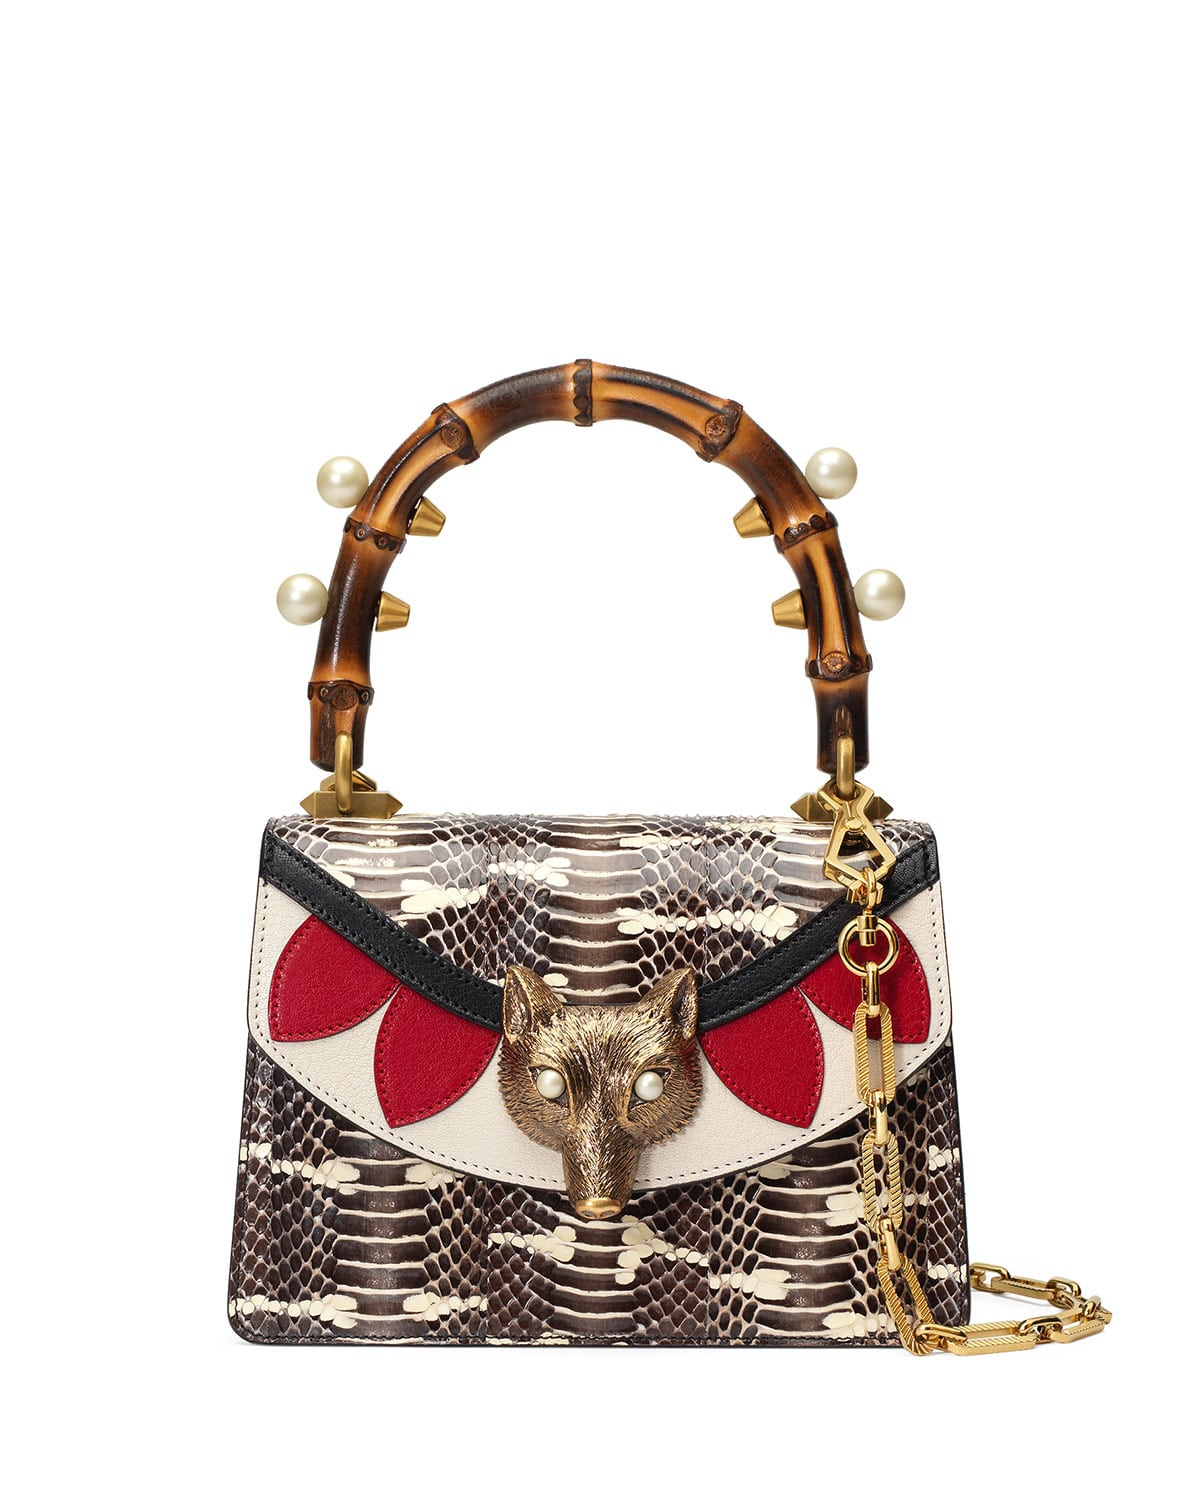 7eea73dc165 Gucci Spring Summer 2017 Bag Collection